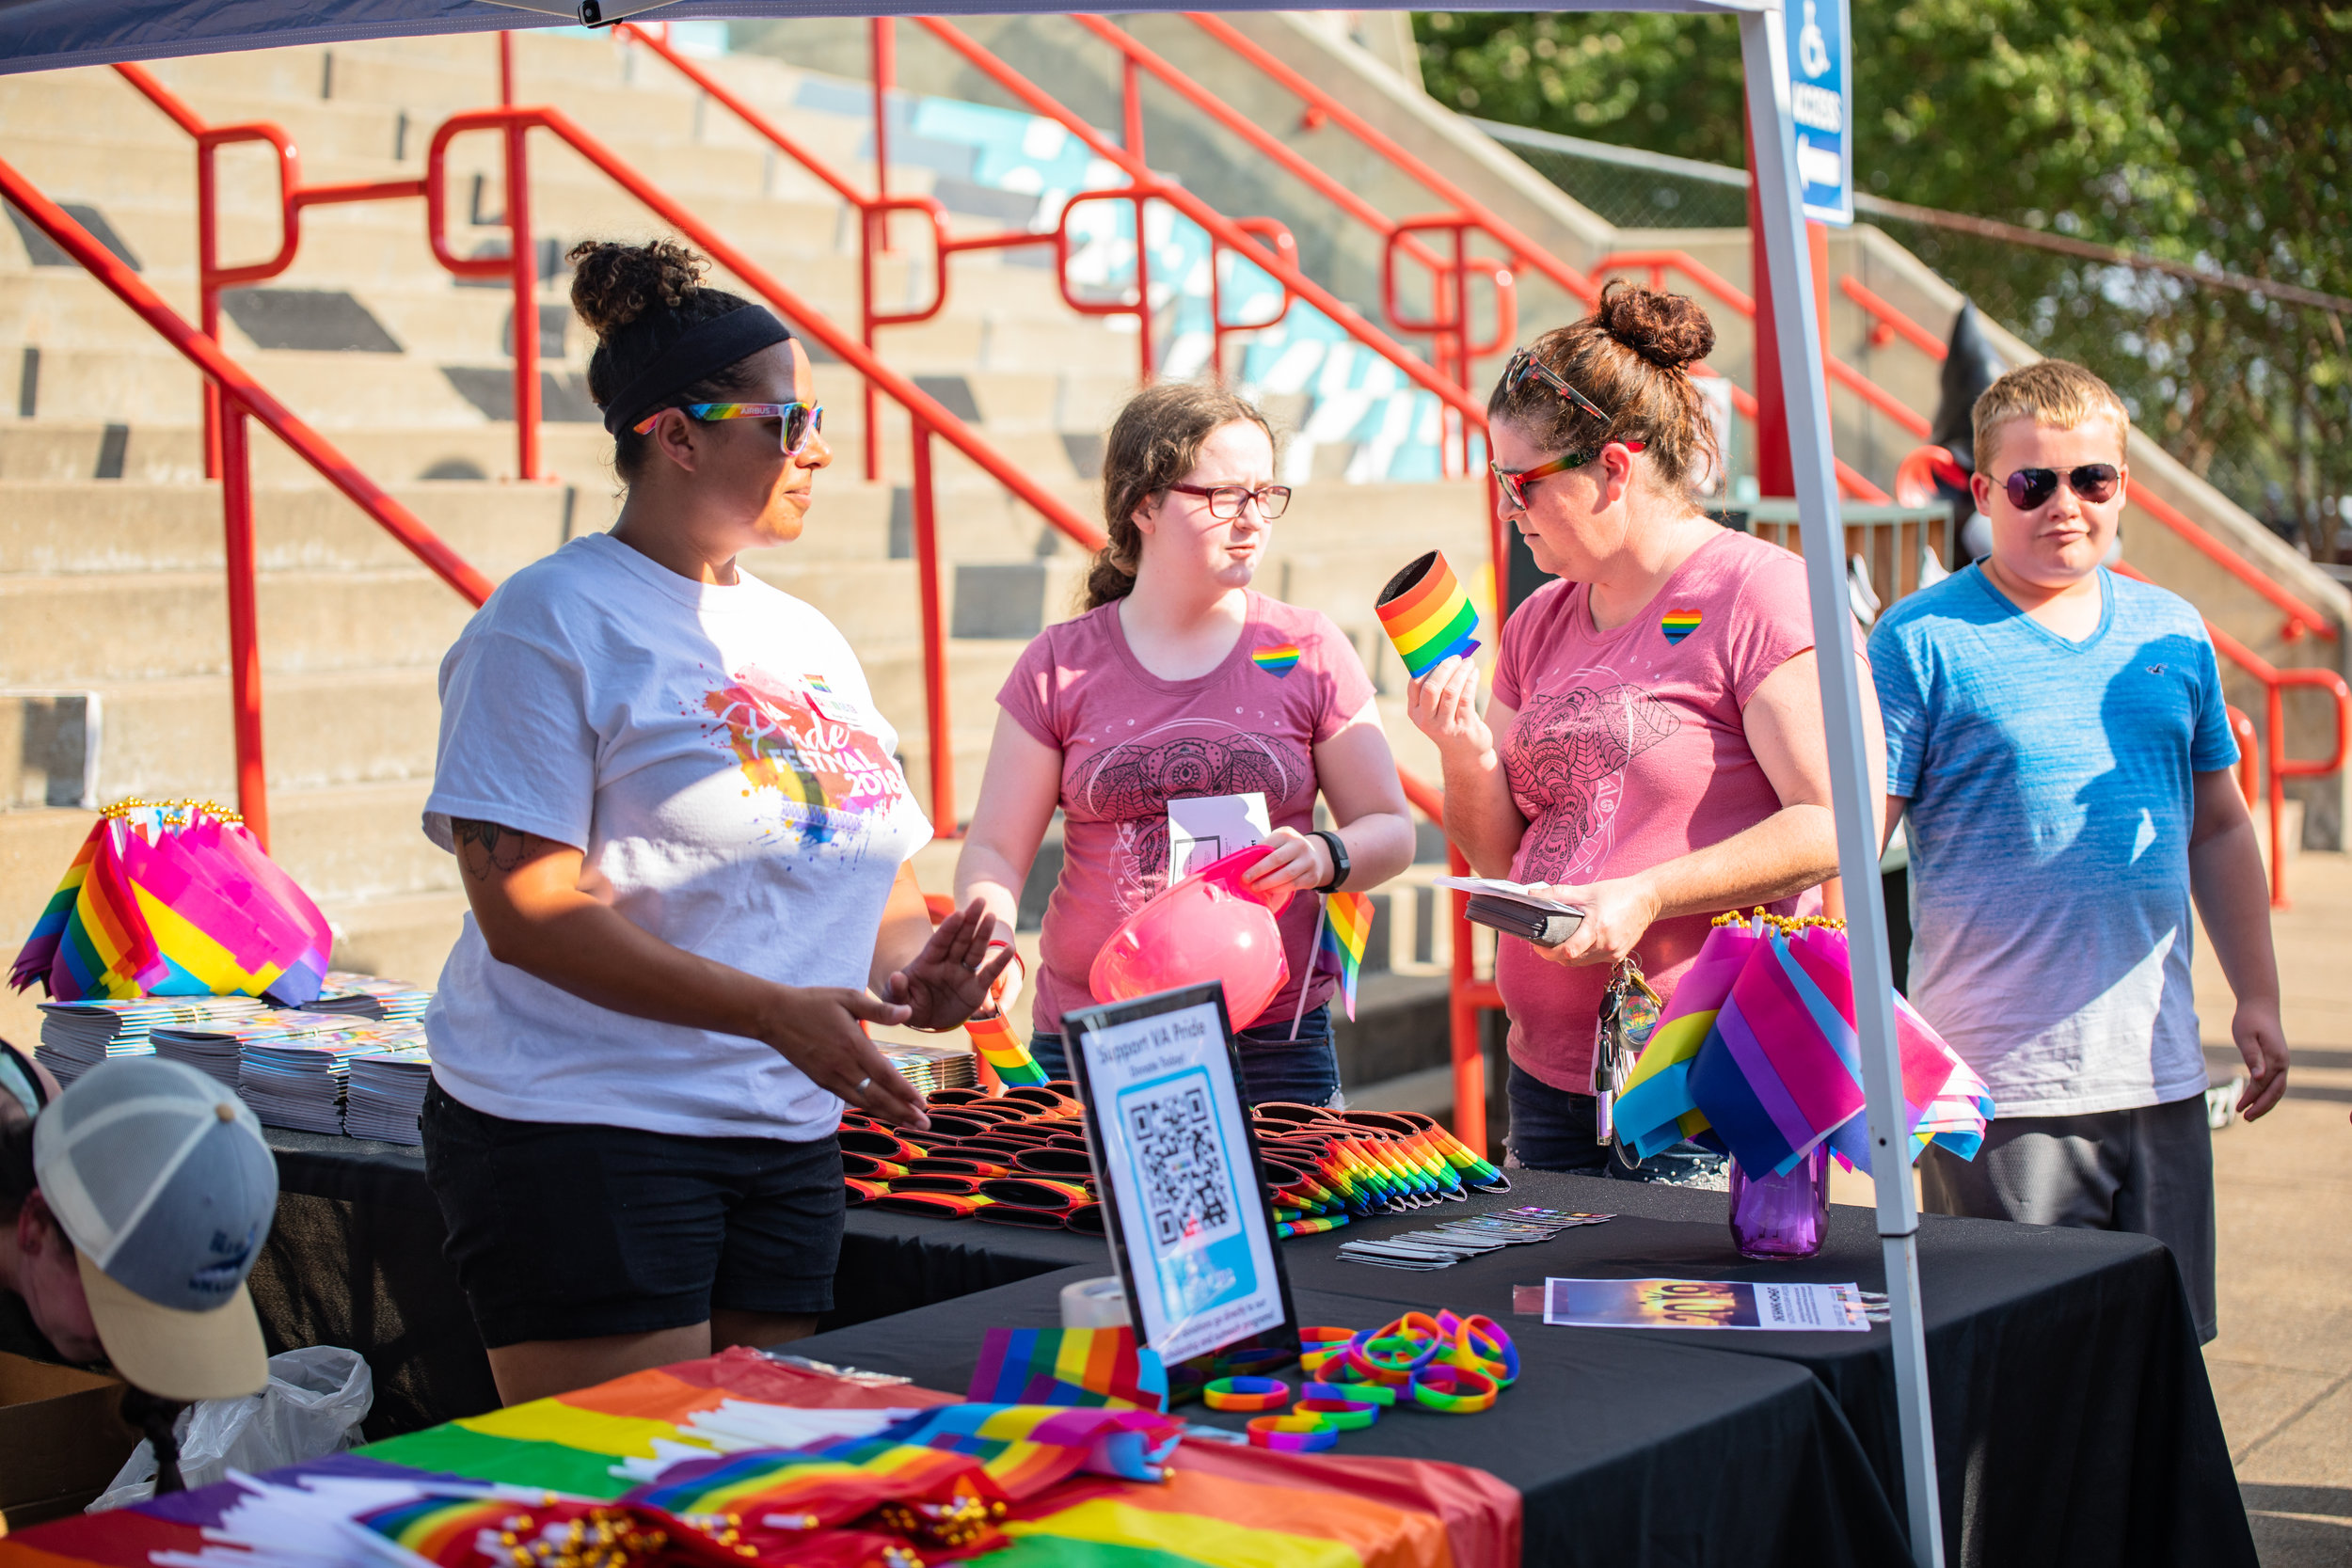 2019_0627_VirginiaPride_Squirrels_PrideNight_004.jpg